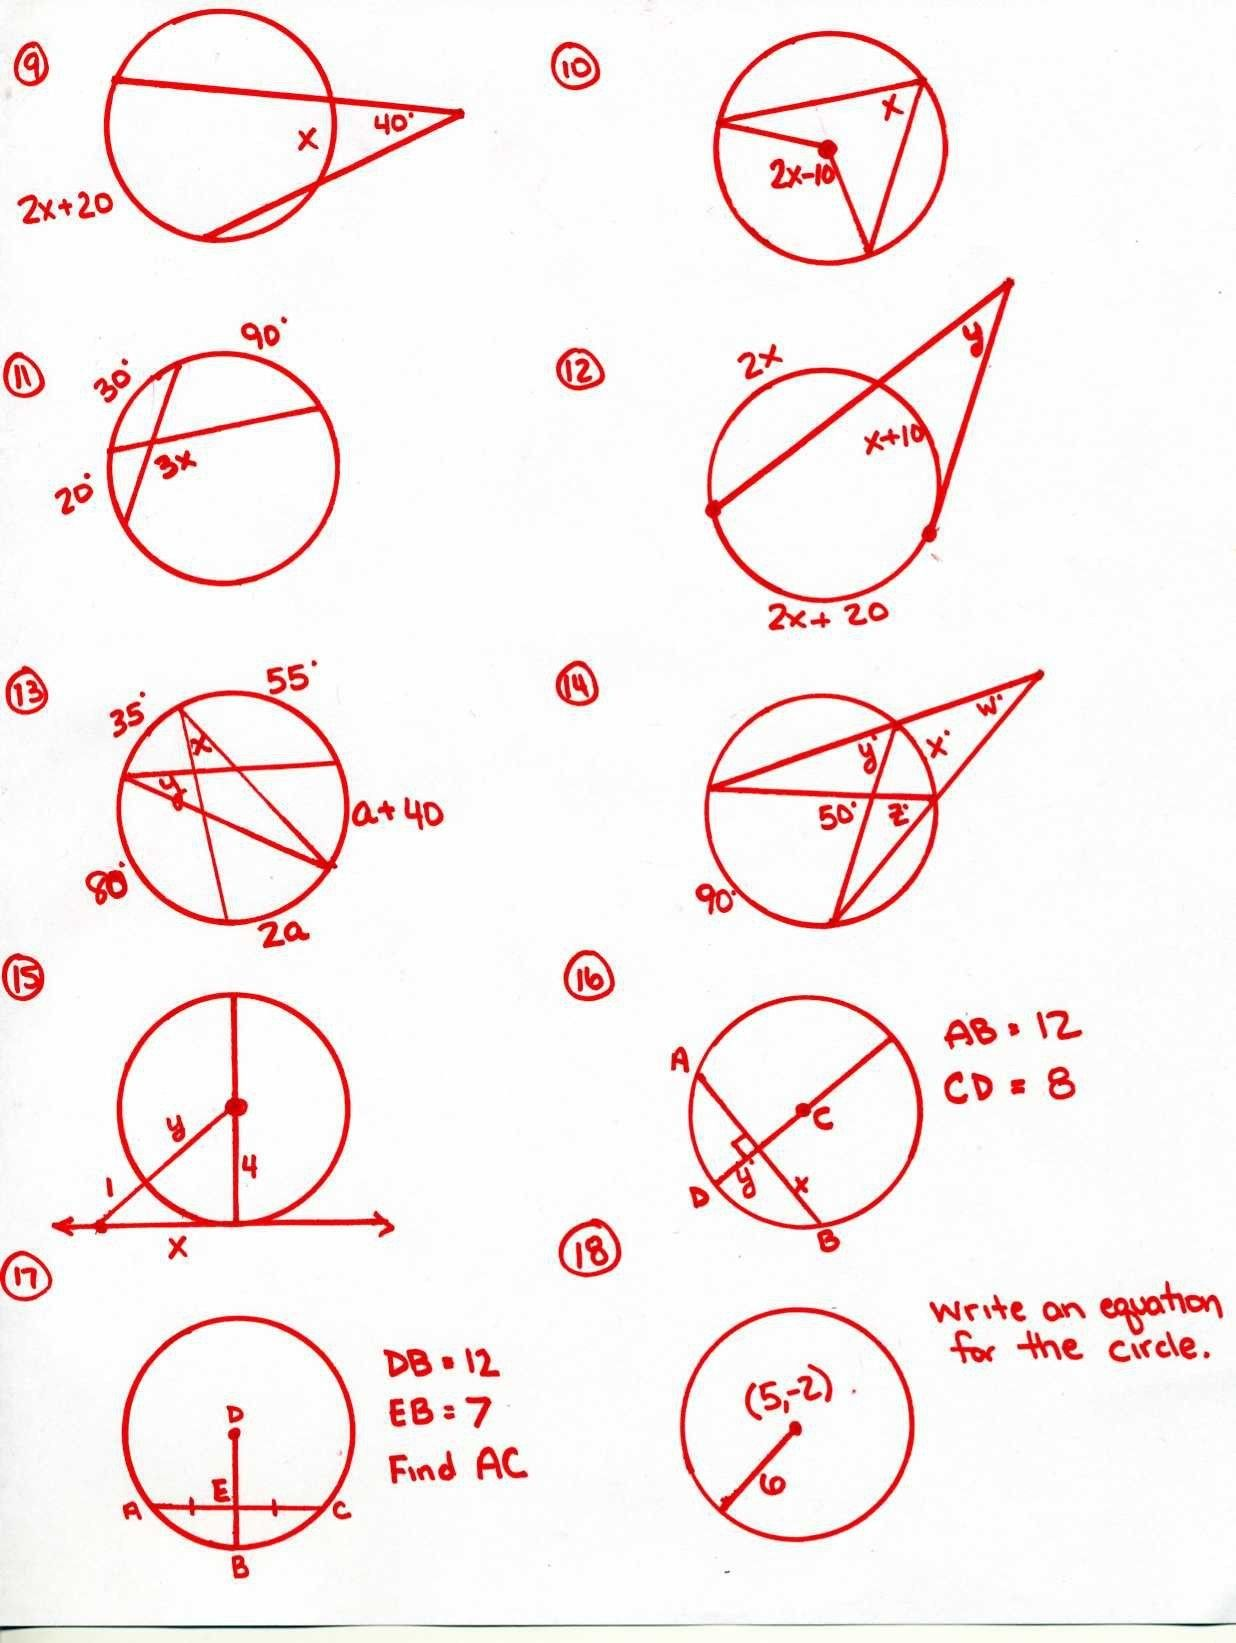 Completing The Square Circles Worksheet Calculate Arc Length Worksheet Geometry Worksheets Circle Theorems Angles Worksheet